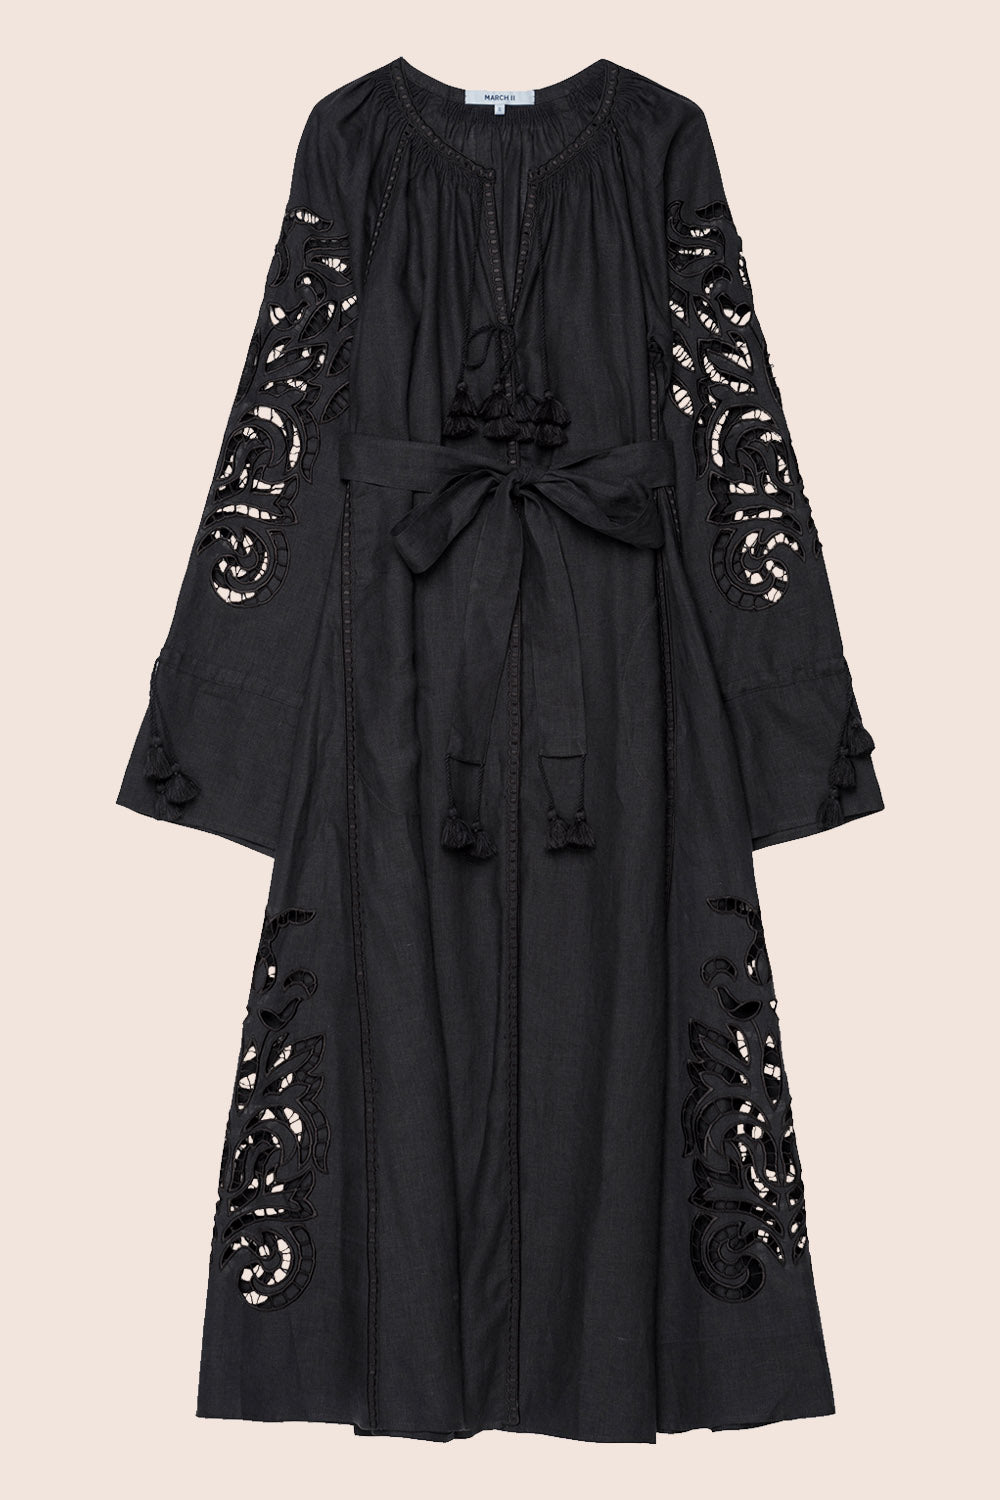 San Juan Maxi Dress In Black